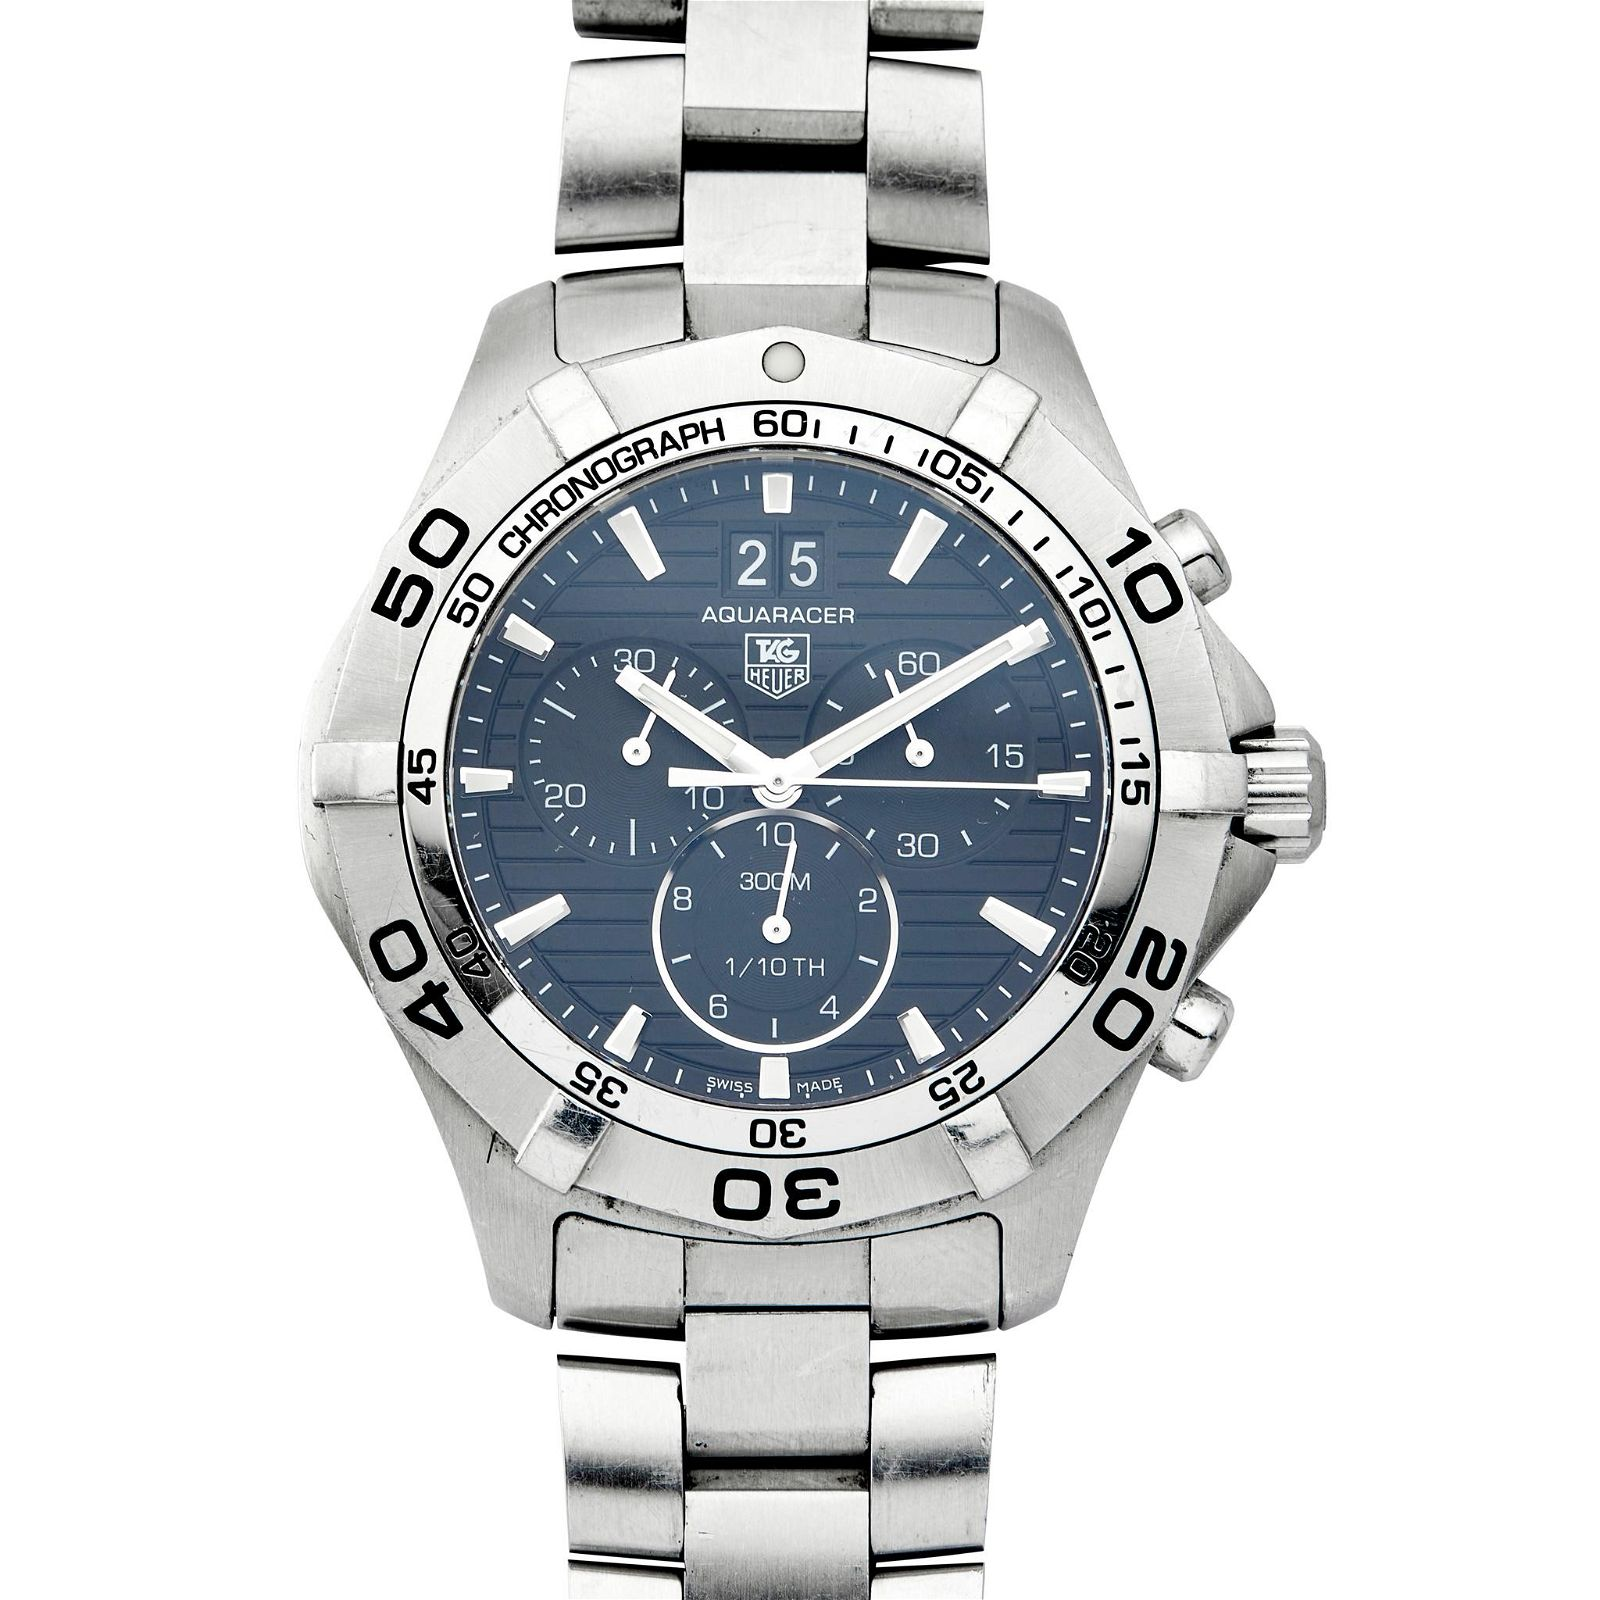 A gentleman's stainless-steel chronograph, Tag Heuer